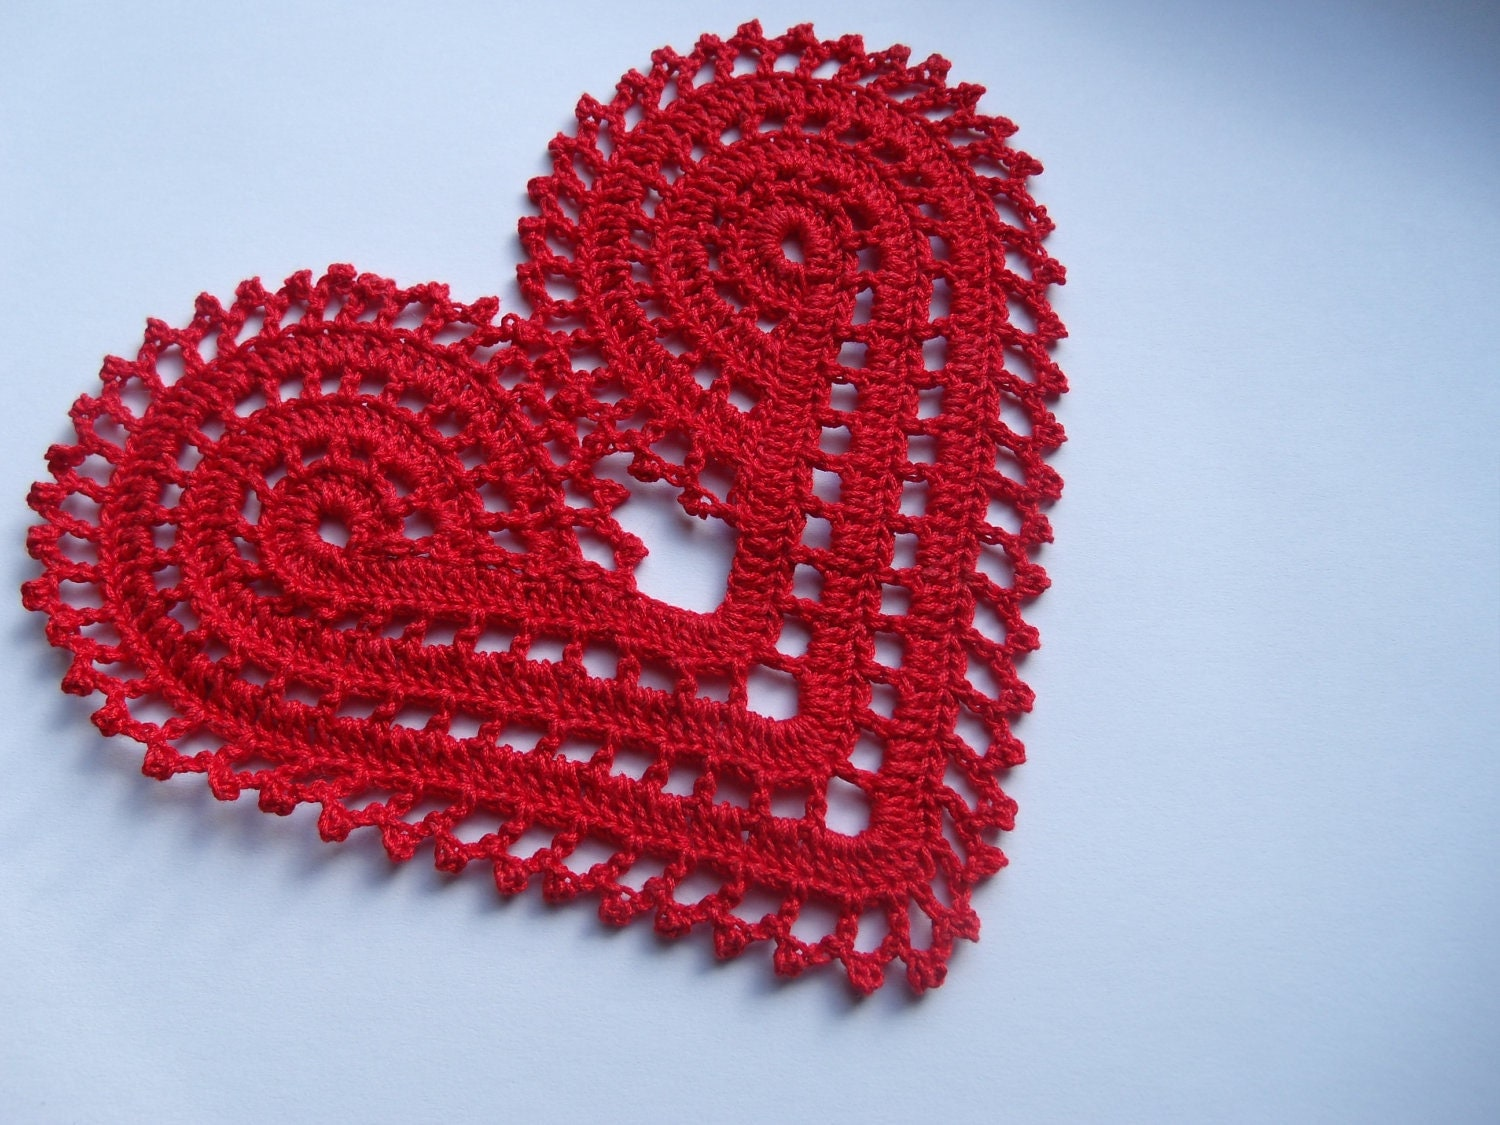 Red Heart Crochet - All For Crochet